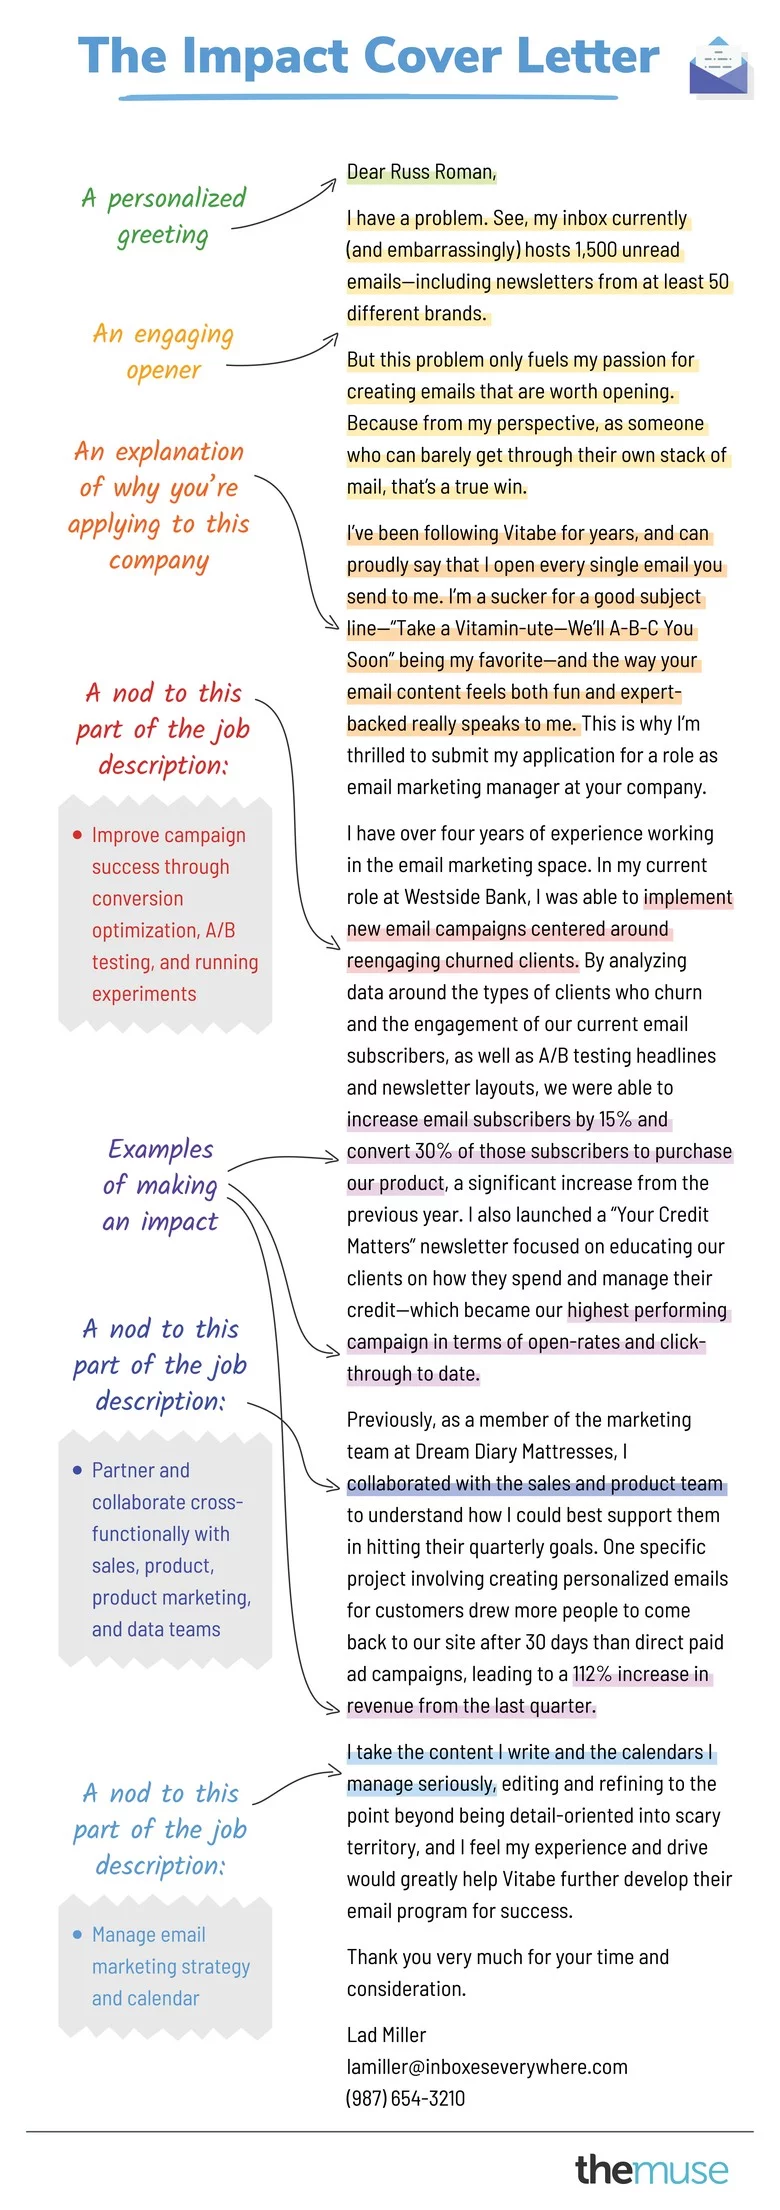 The Best Cover Letter Examples for Every Type of Job